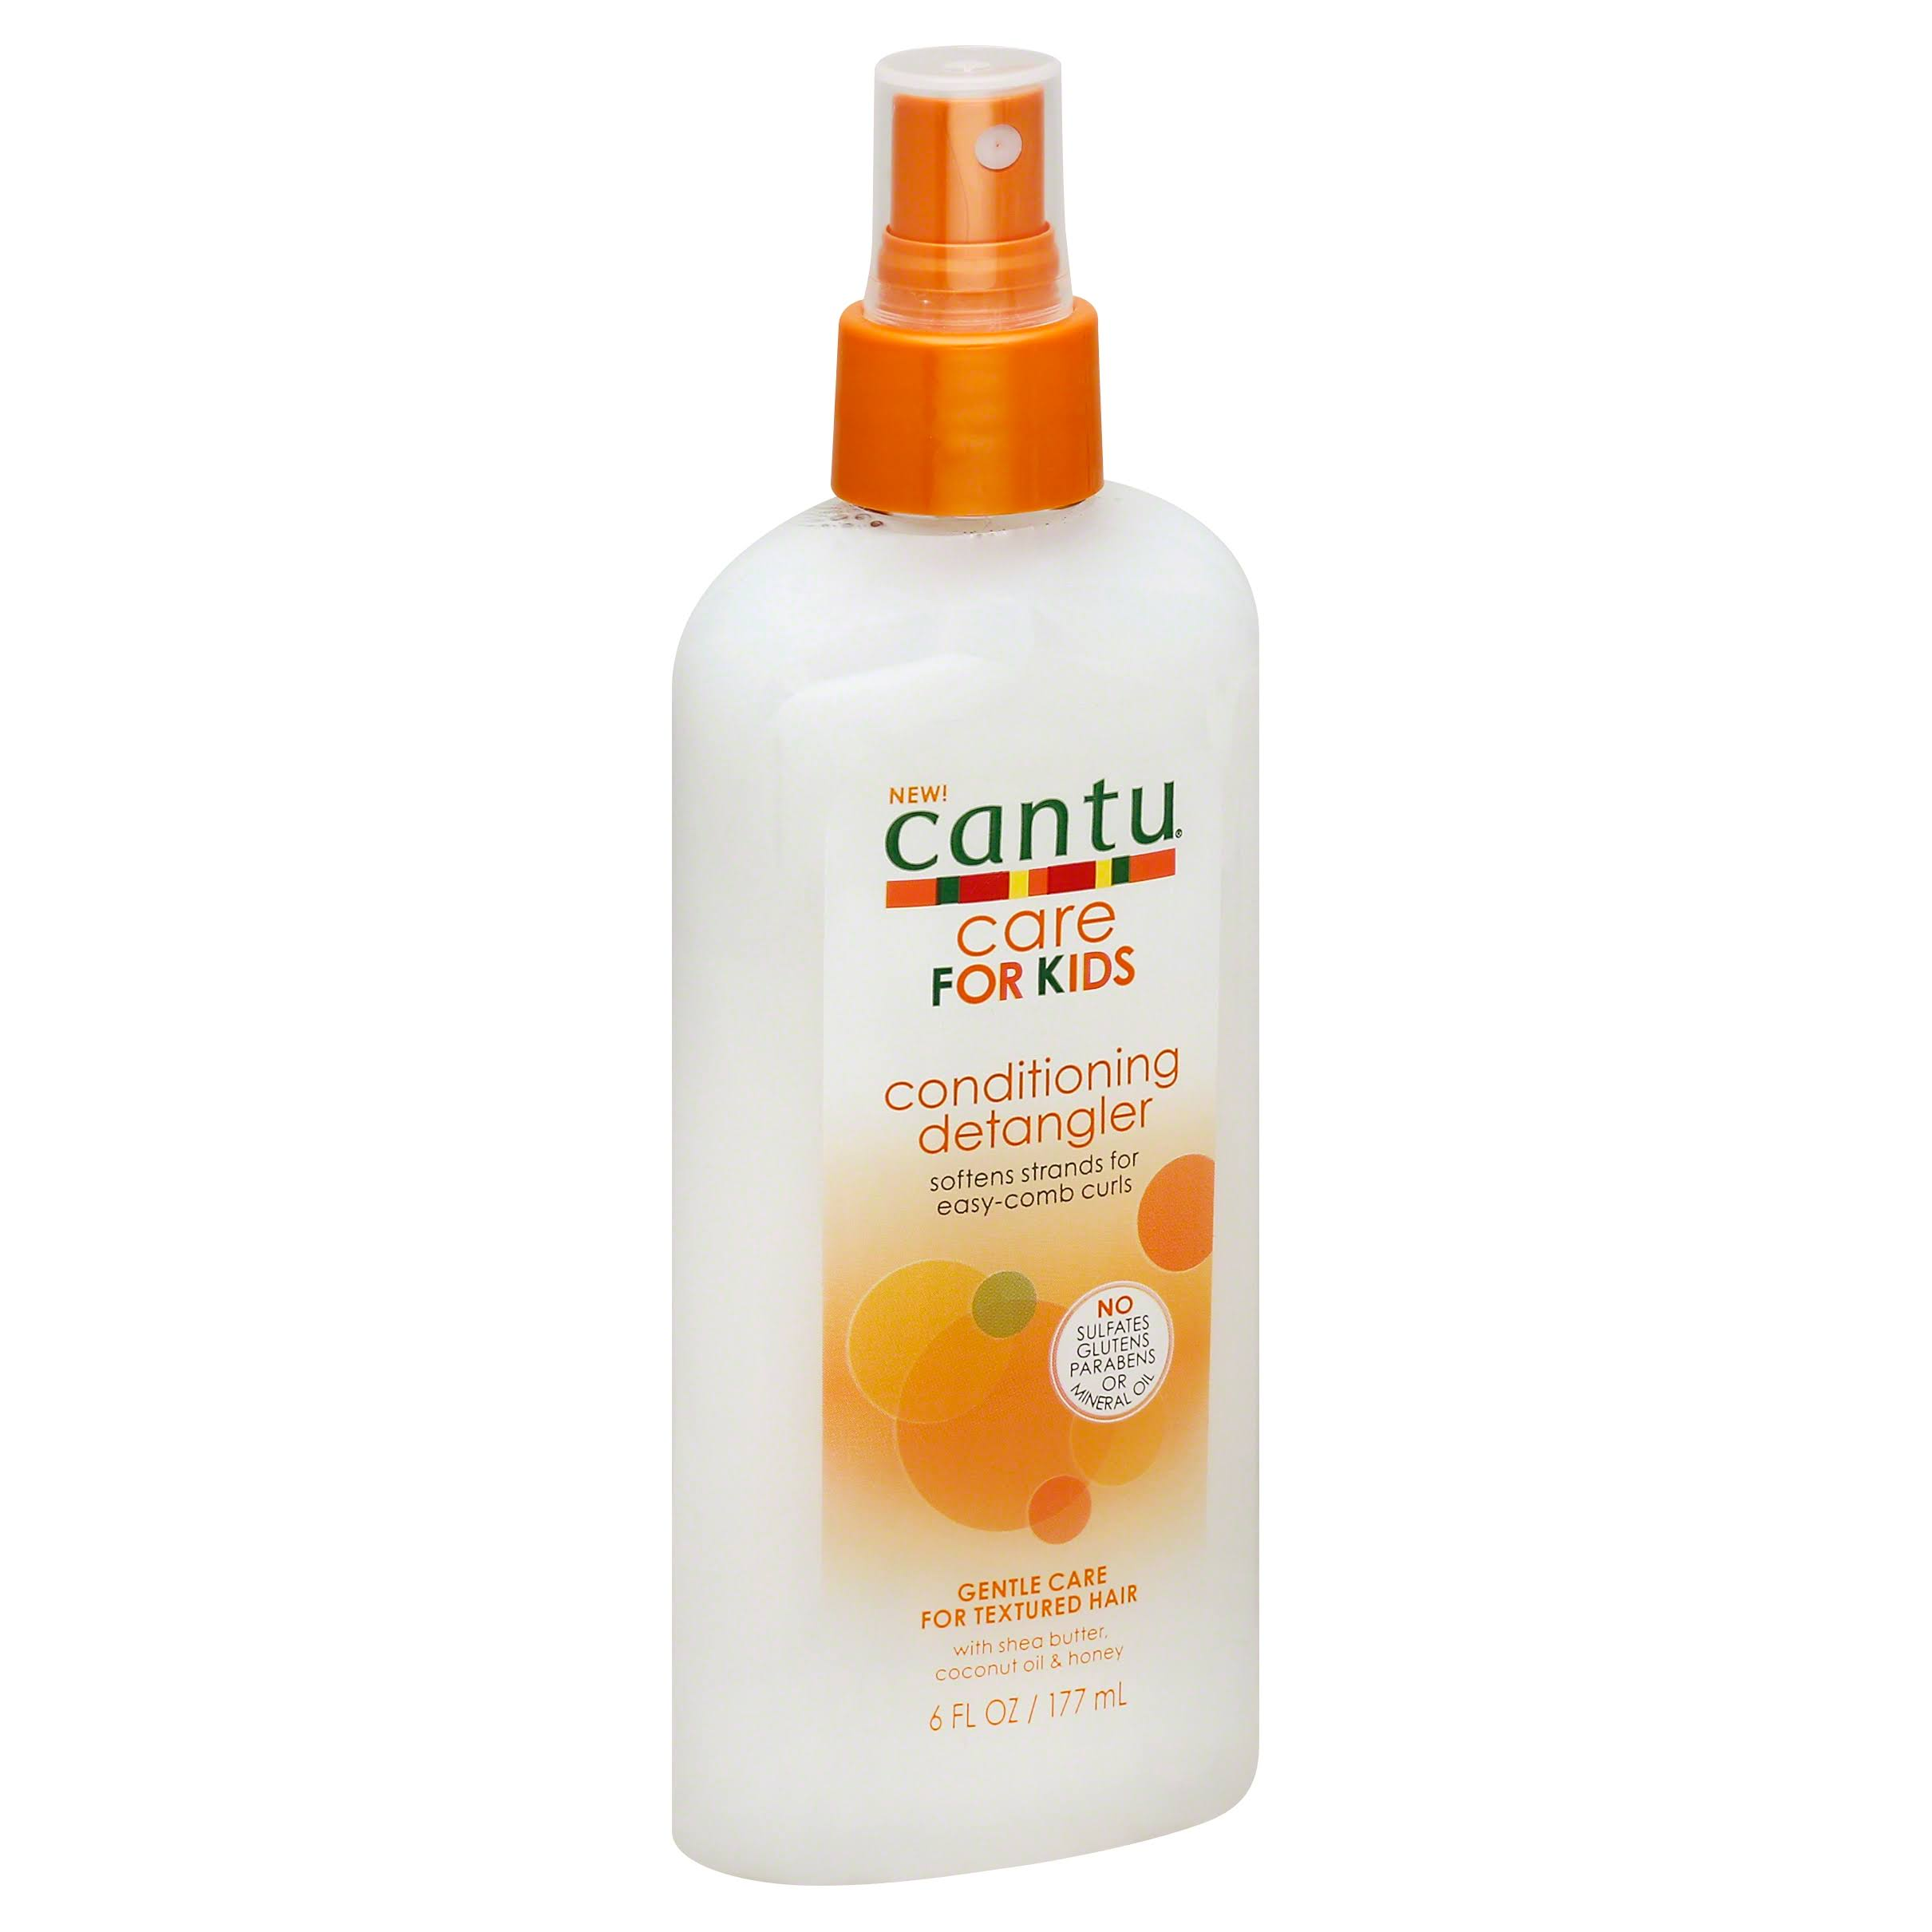 Cantu Care for Kids Conditioning Detangler Spray - 6oz